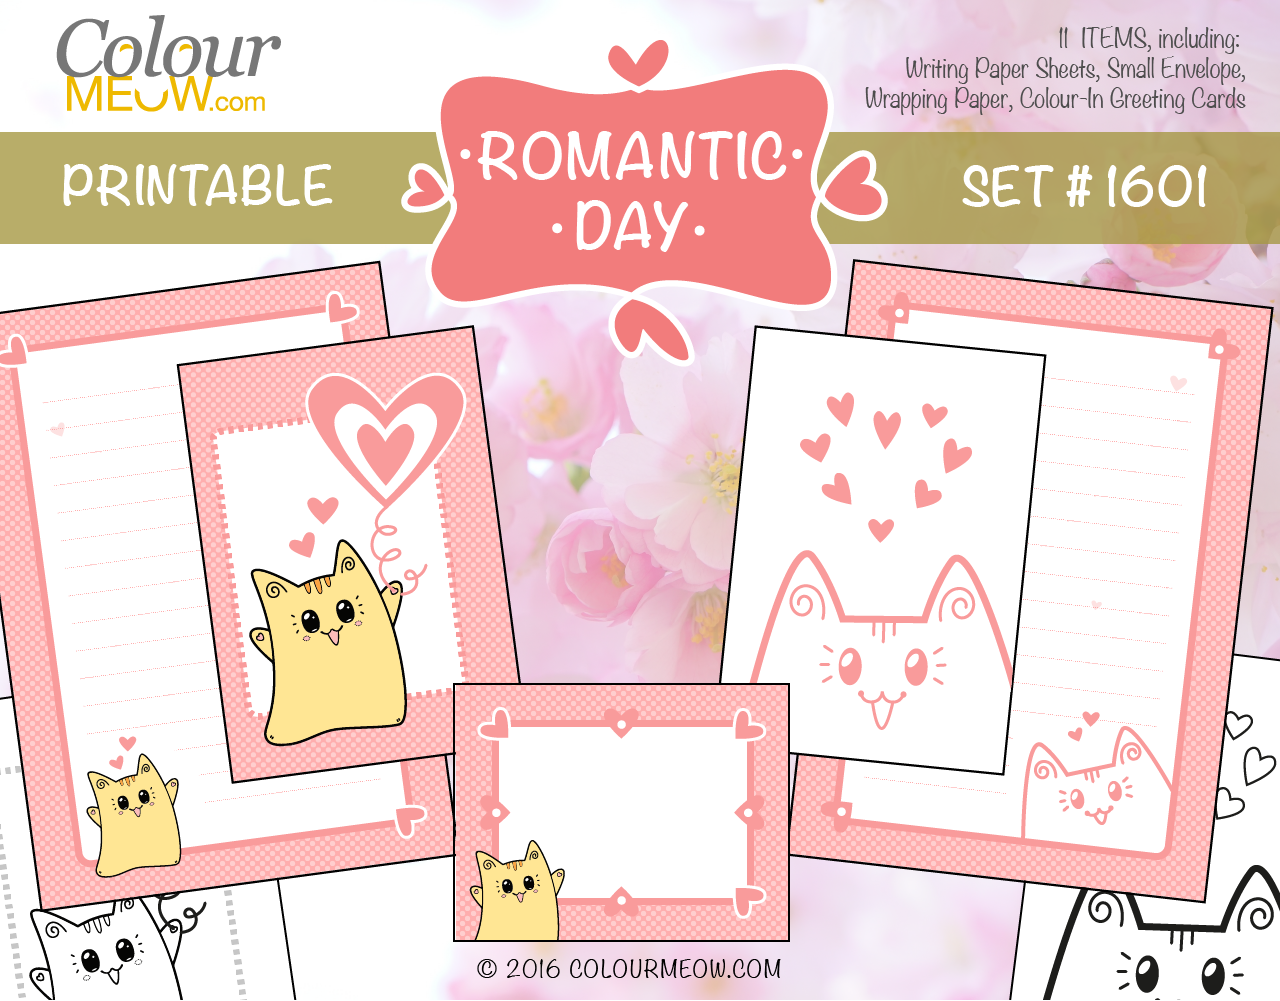 Colour Meow - DIY Printable Set #1601 - Romantic Day - Neko Yoko Cat, Pink Polka Dot Pattern, Hearts - Planning, Writing, Celebration, Diary, Journal, ToDo List